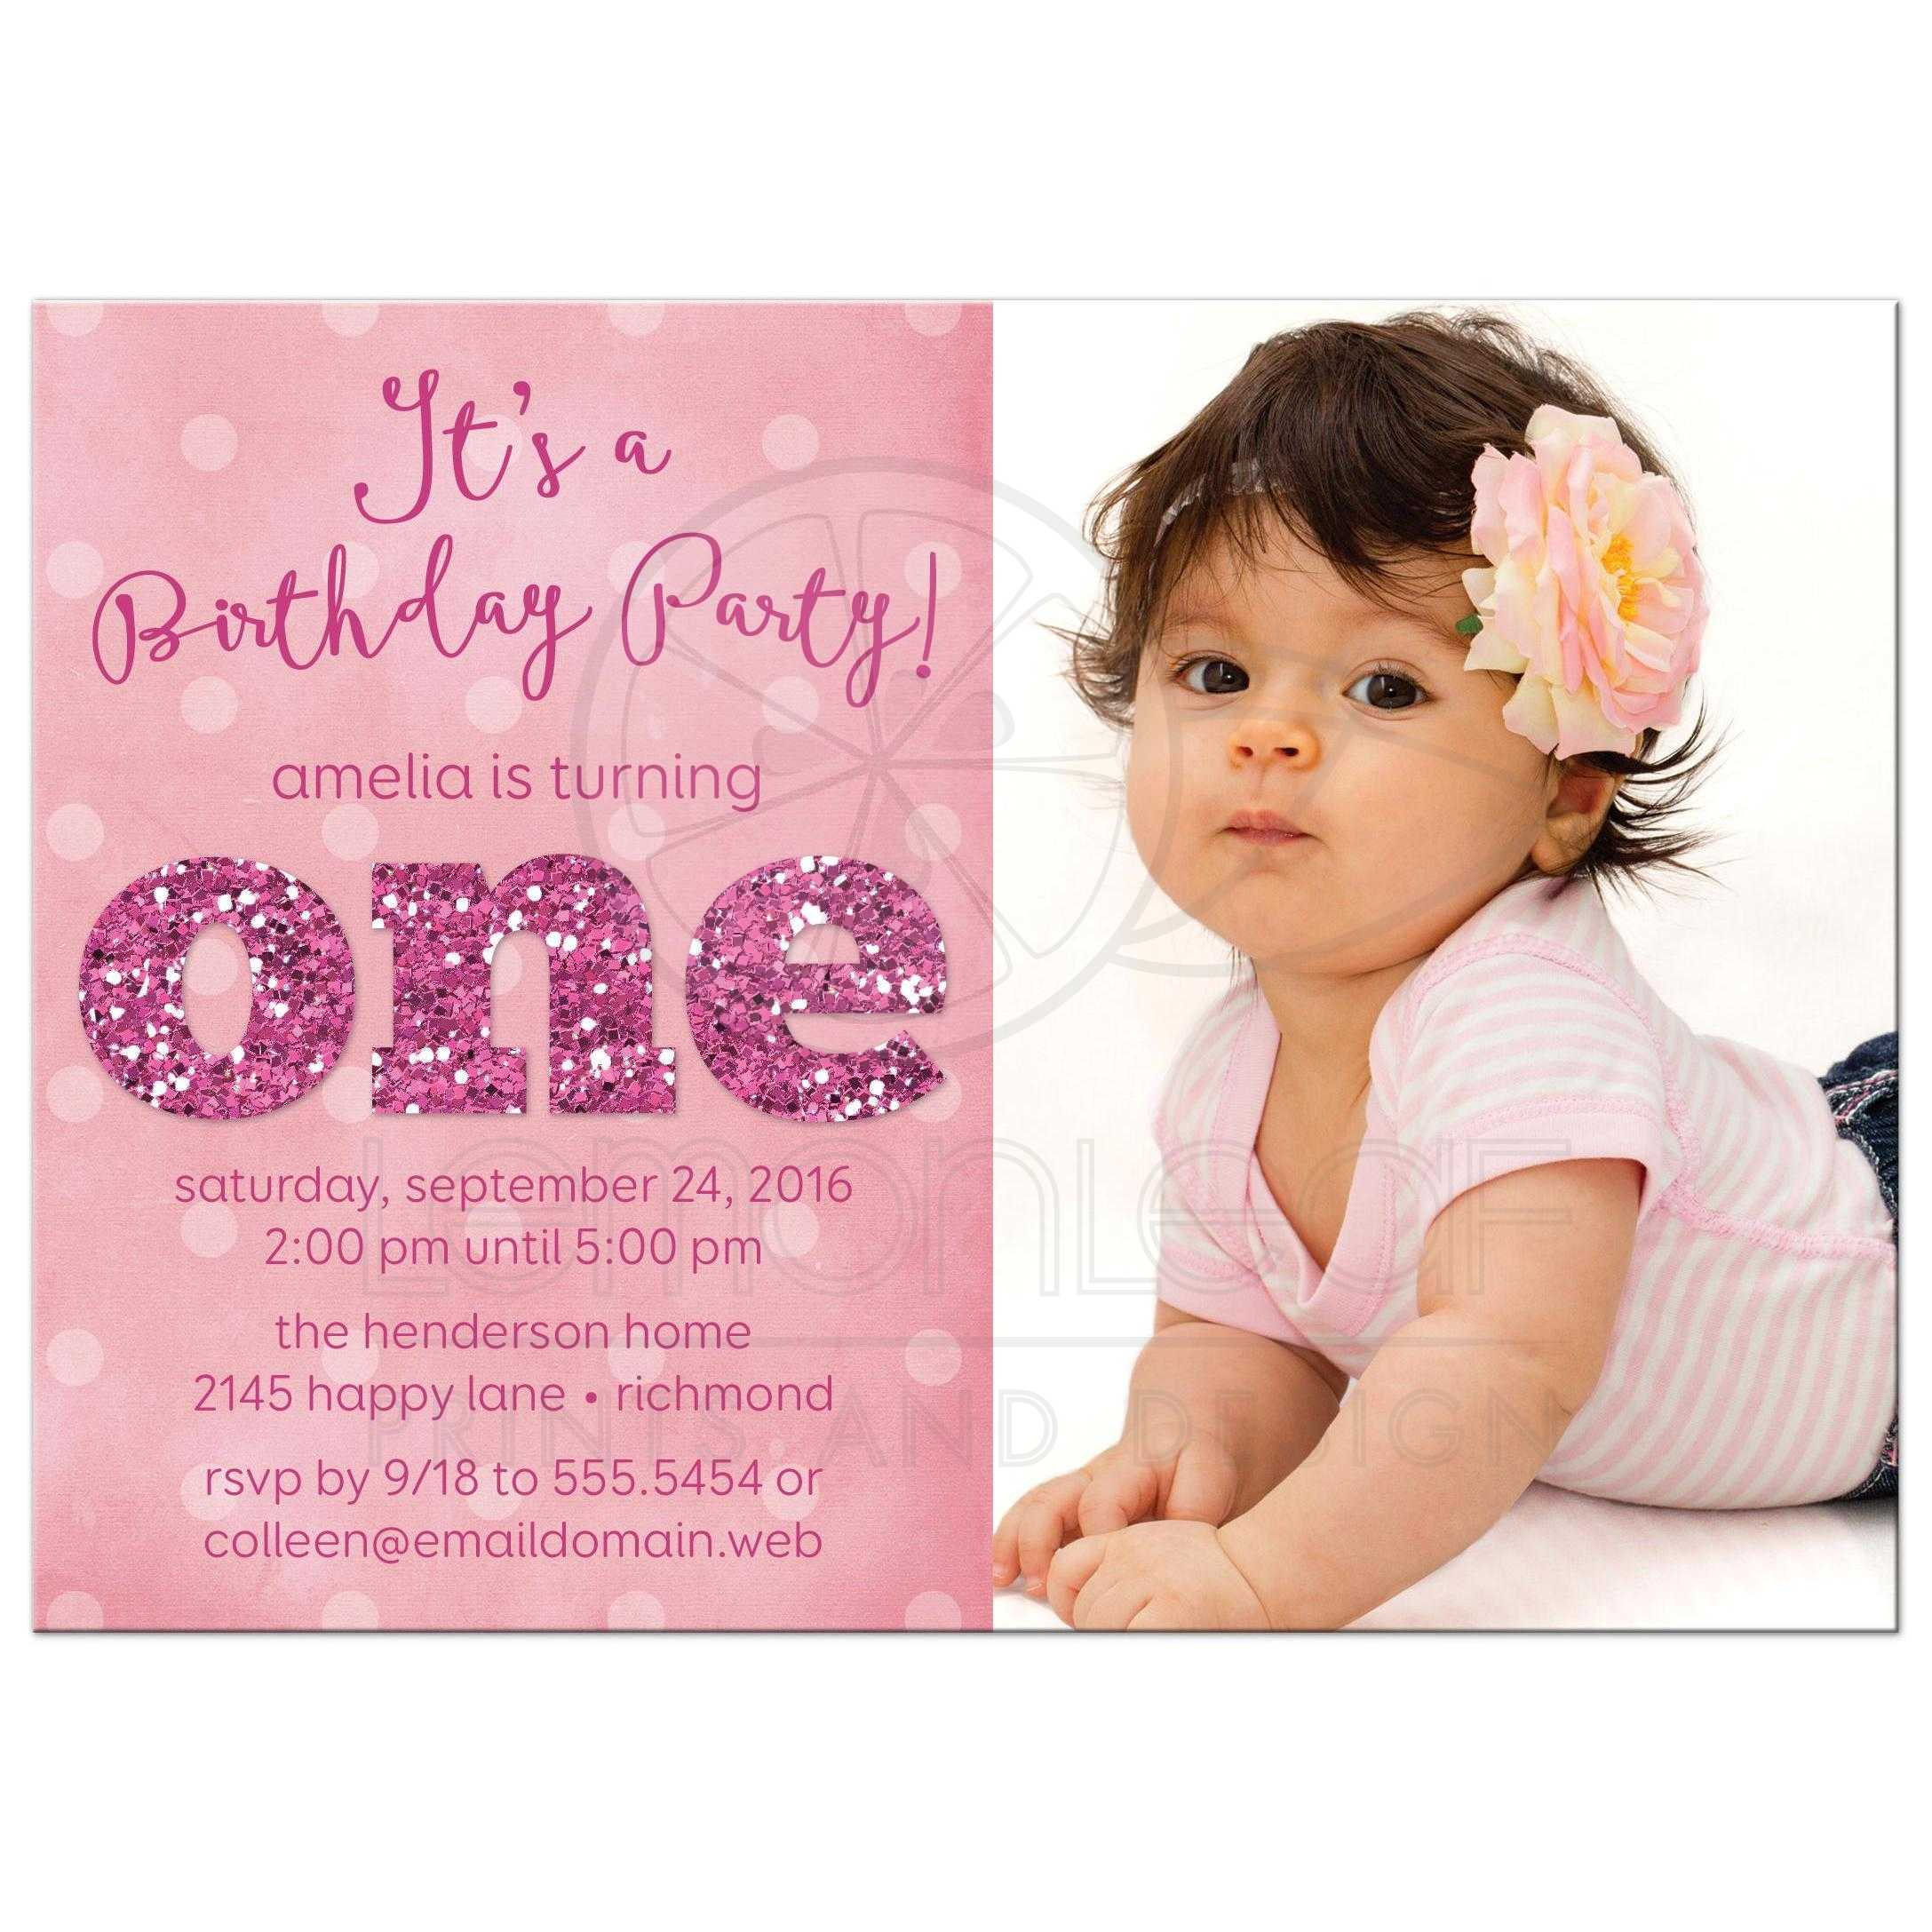 1st birthday invitation card design ; caa813eceb5e6ea371131cbdc5ac1c69